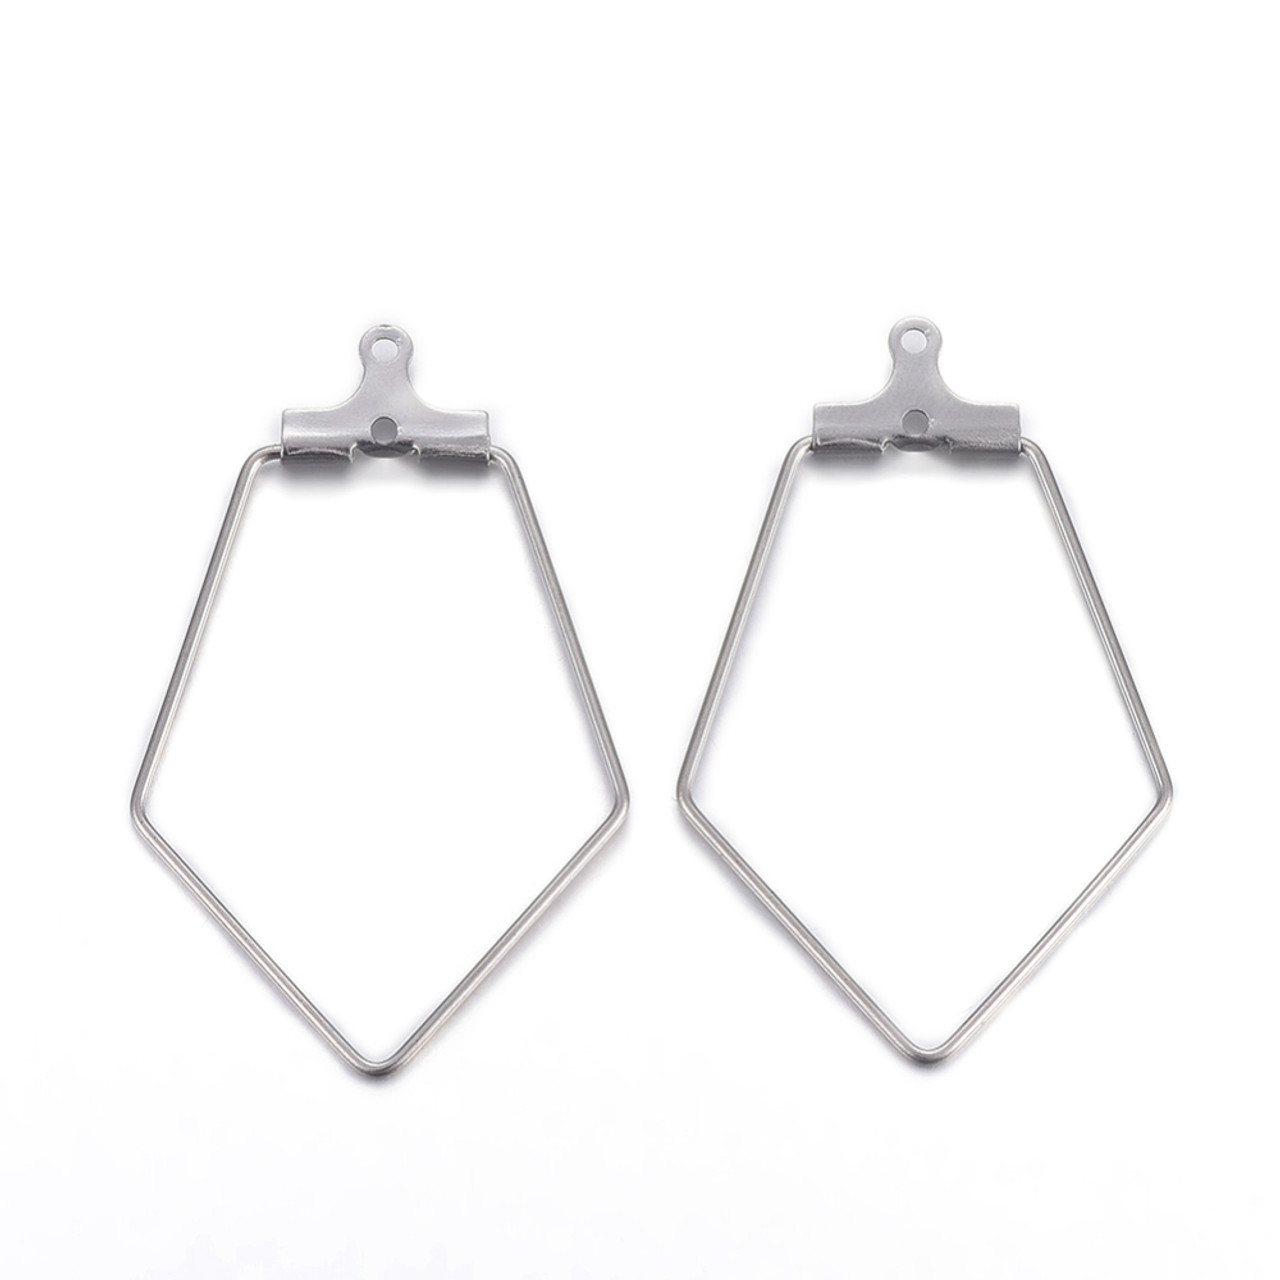 Hoop Earring Findings, Rhombus, Stainless Steel Color, 35x22x1.8mm, Hole: 1mm; Inner Size: 28x21mm; Pin: 0.7mm (1 Pair)